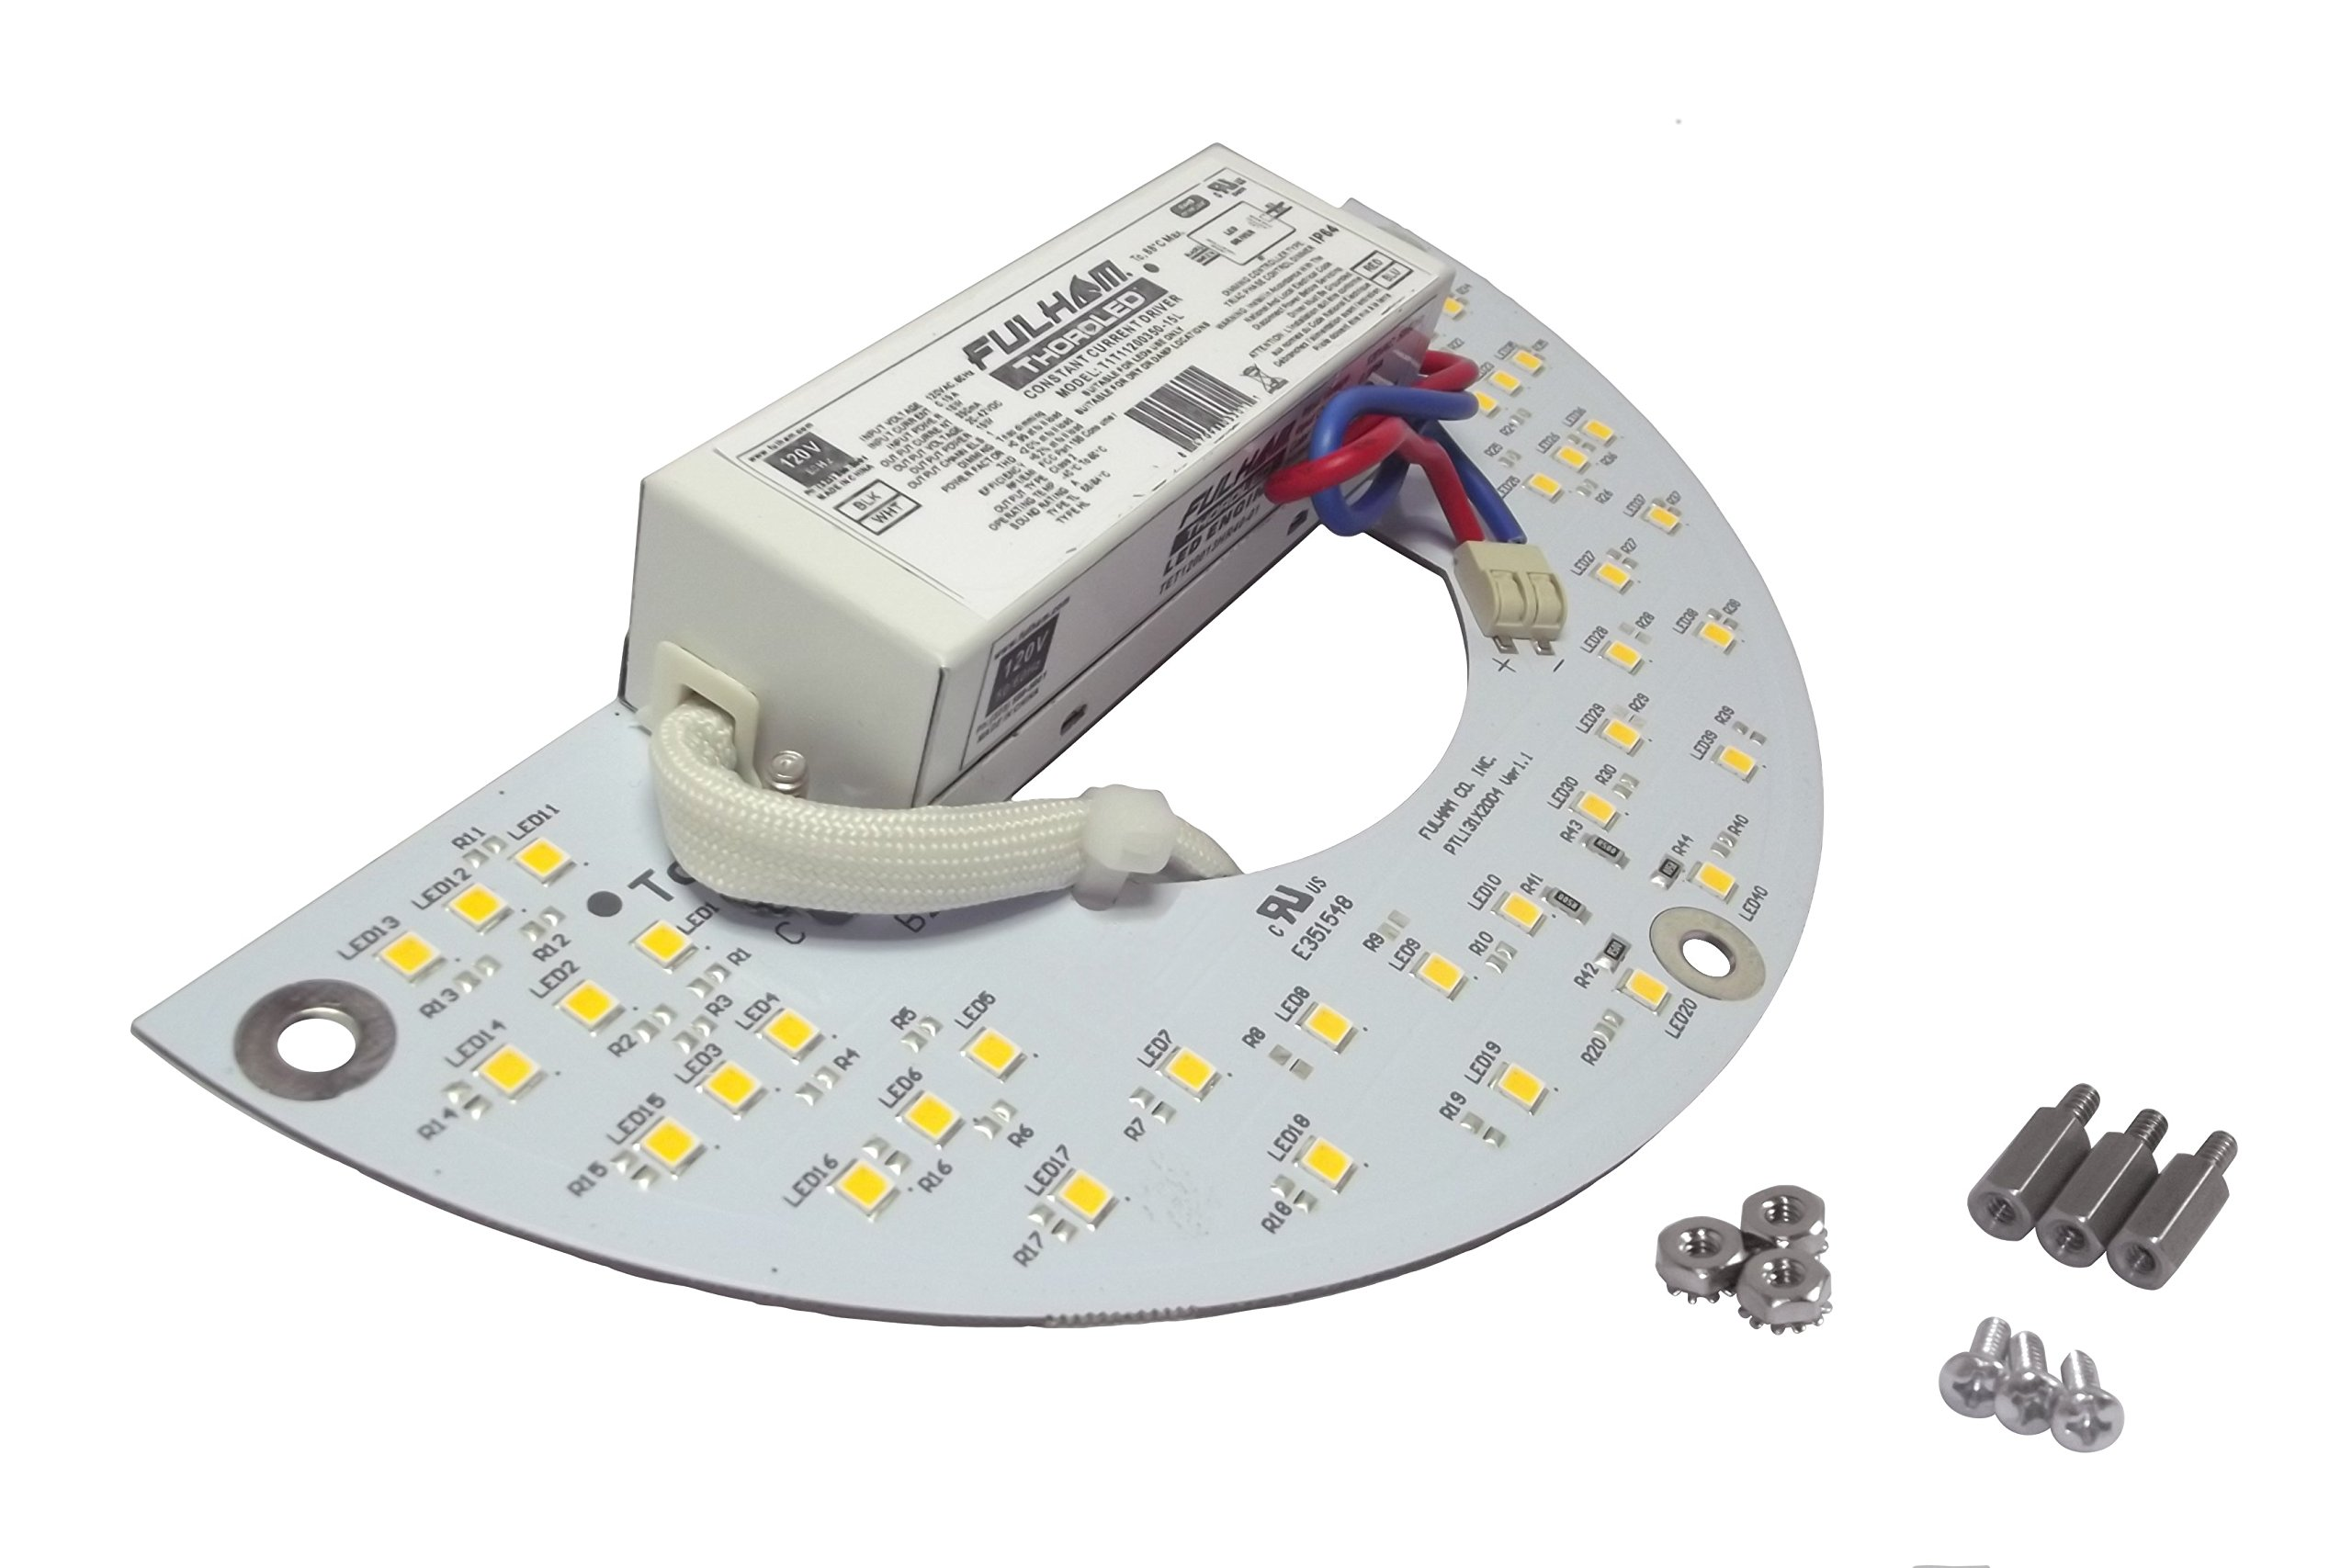 Fulham Lighting WH8-230-L Workhorse 8-Versatile Fluorescent Ballast-Instant Start-230V-Linear Model w/Side Leads Electronic